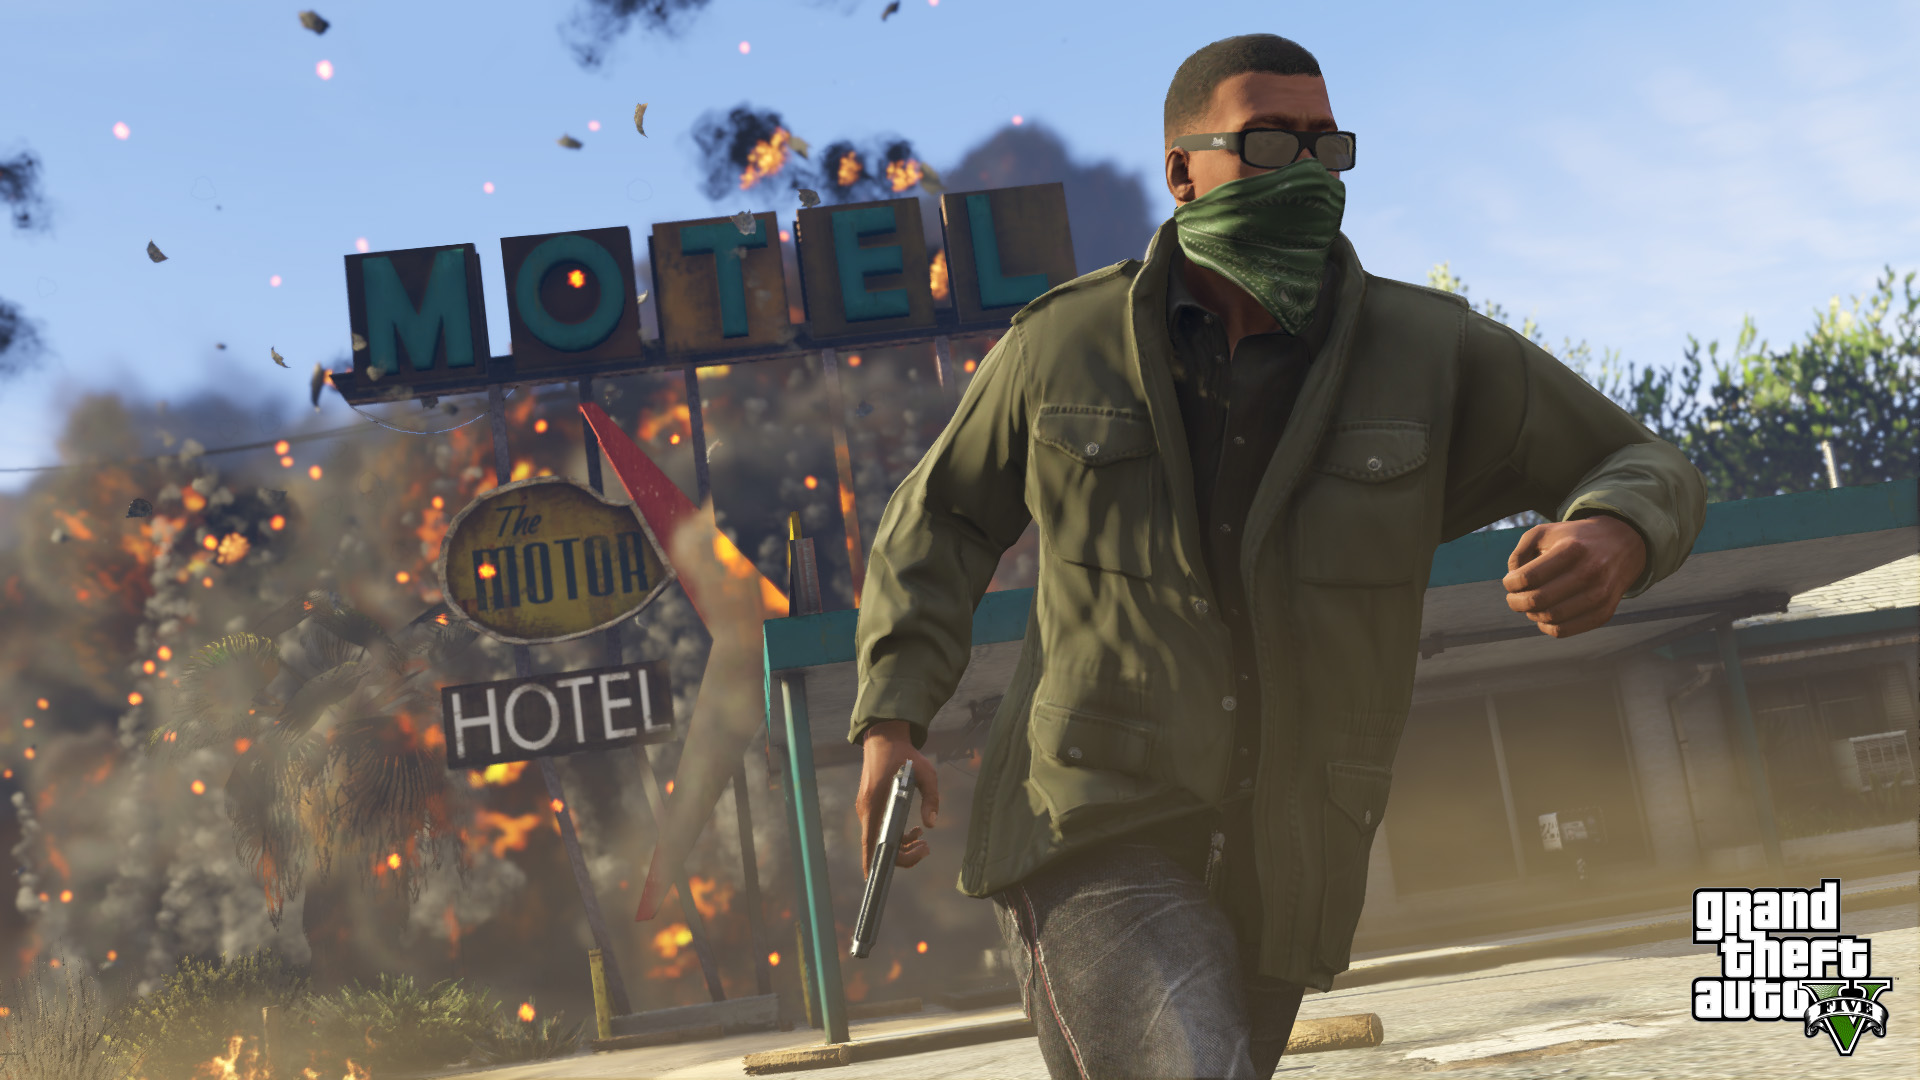 Franklin Clinton: the story of the character GTA5 16